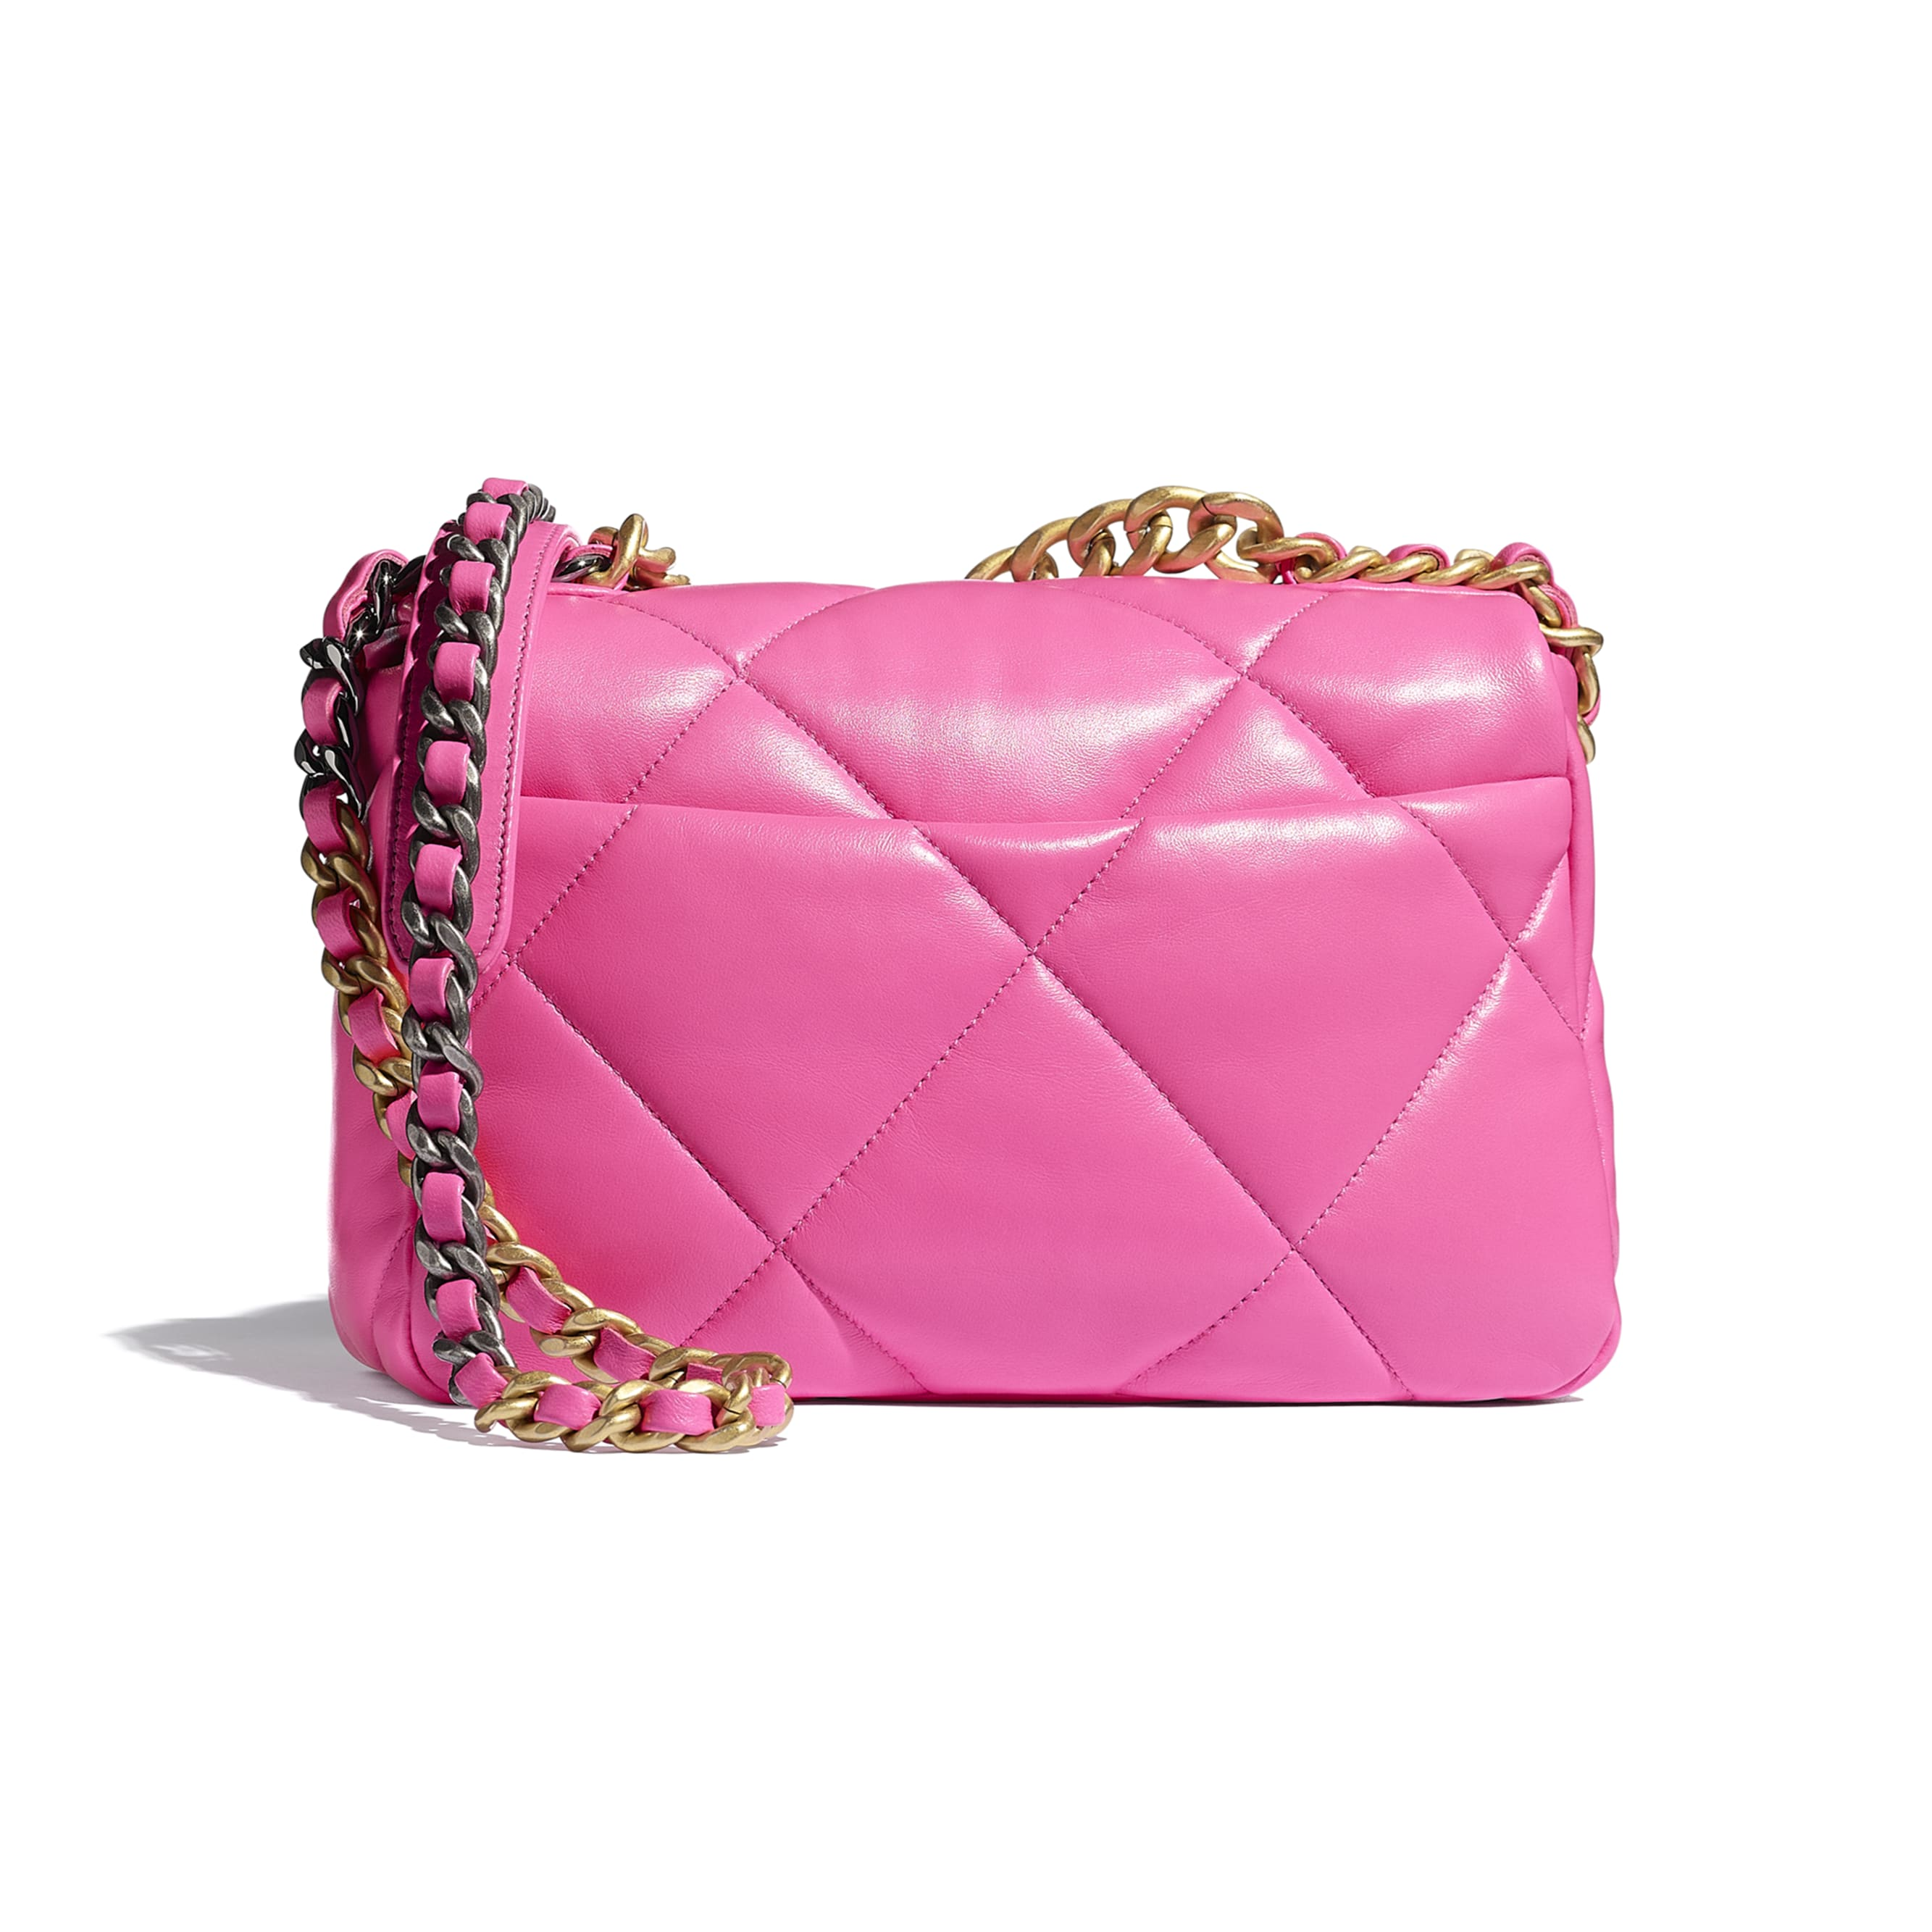 CHANEL 19 Flap Bag - Neon Pink - Shiny Lambskin, Gold-Tone, Silver-Tone & Ruthenium-Finish Metal - CHANEL - Alternative view - see standard sized version